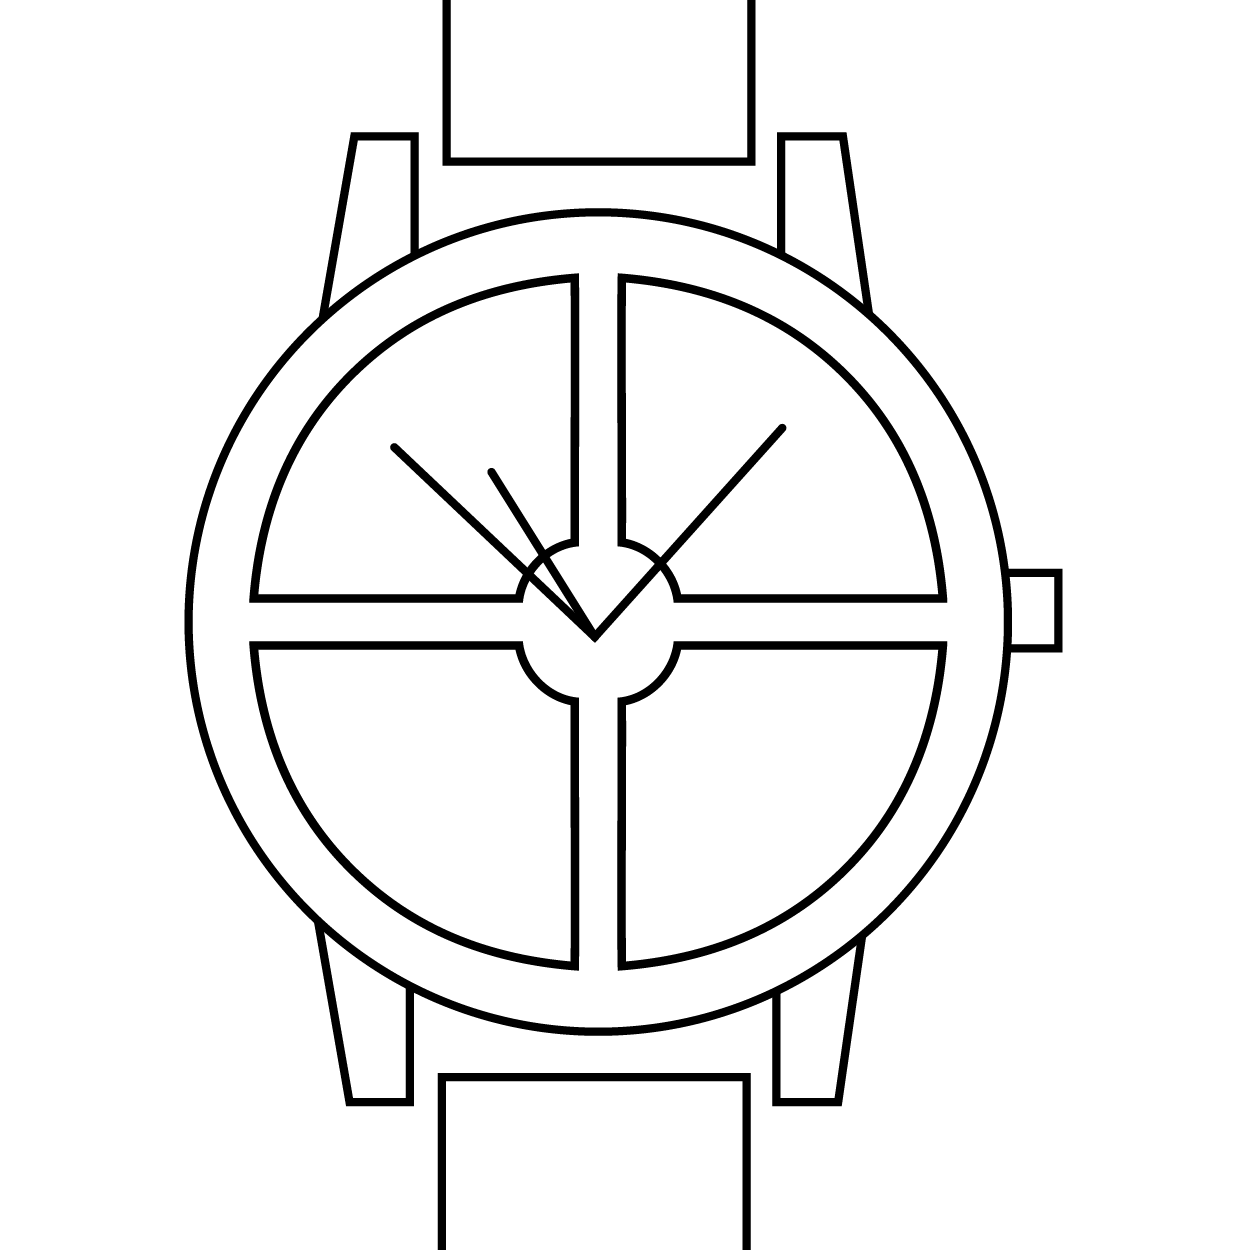 Icon_Whatch-black_300dpi.png